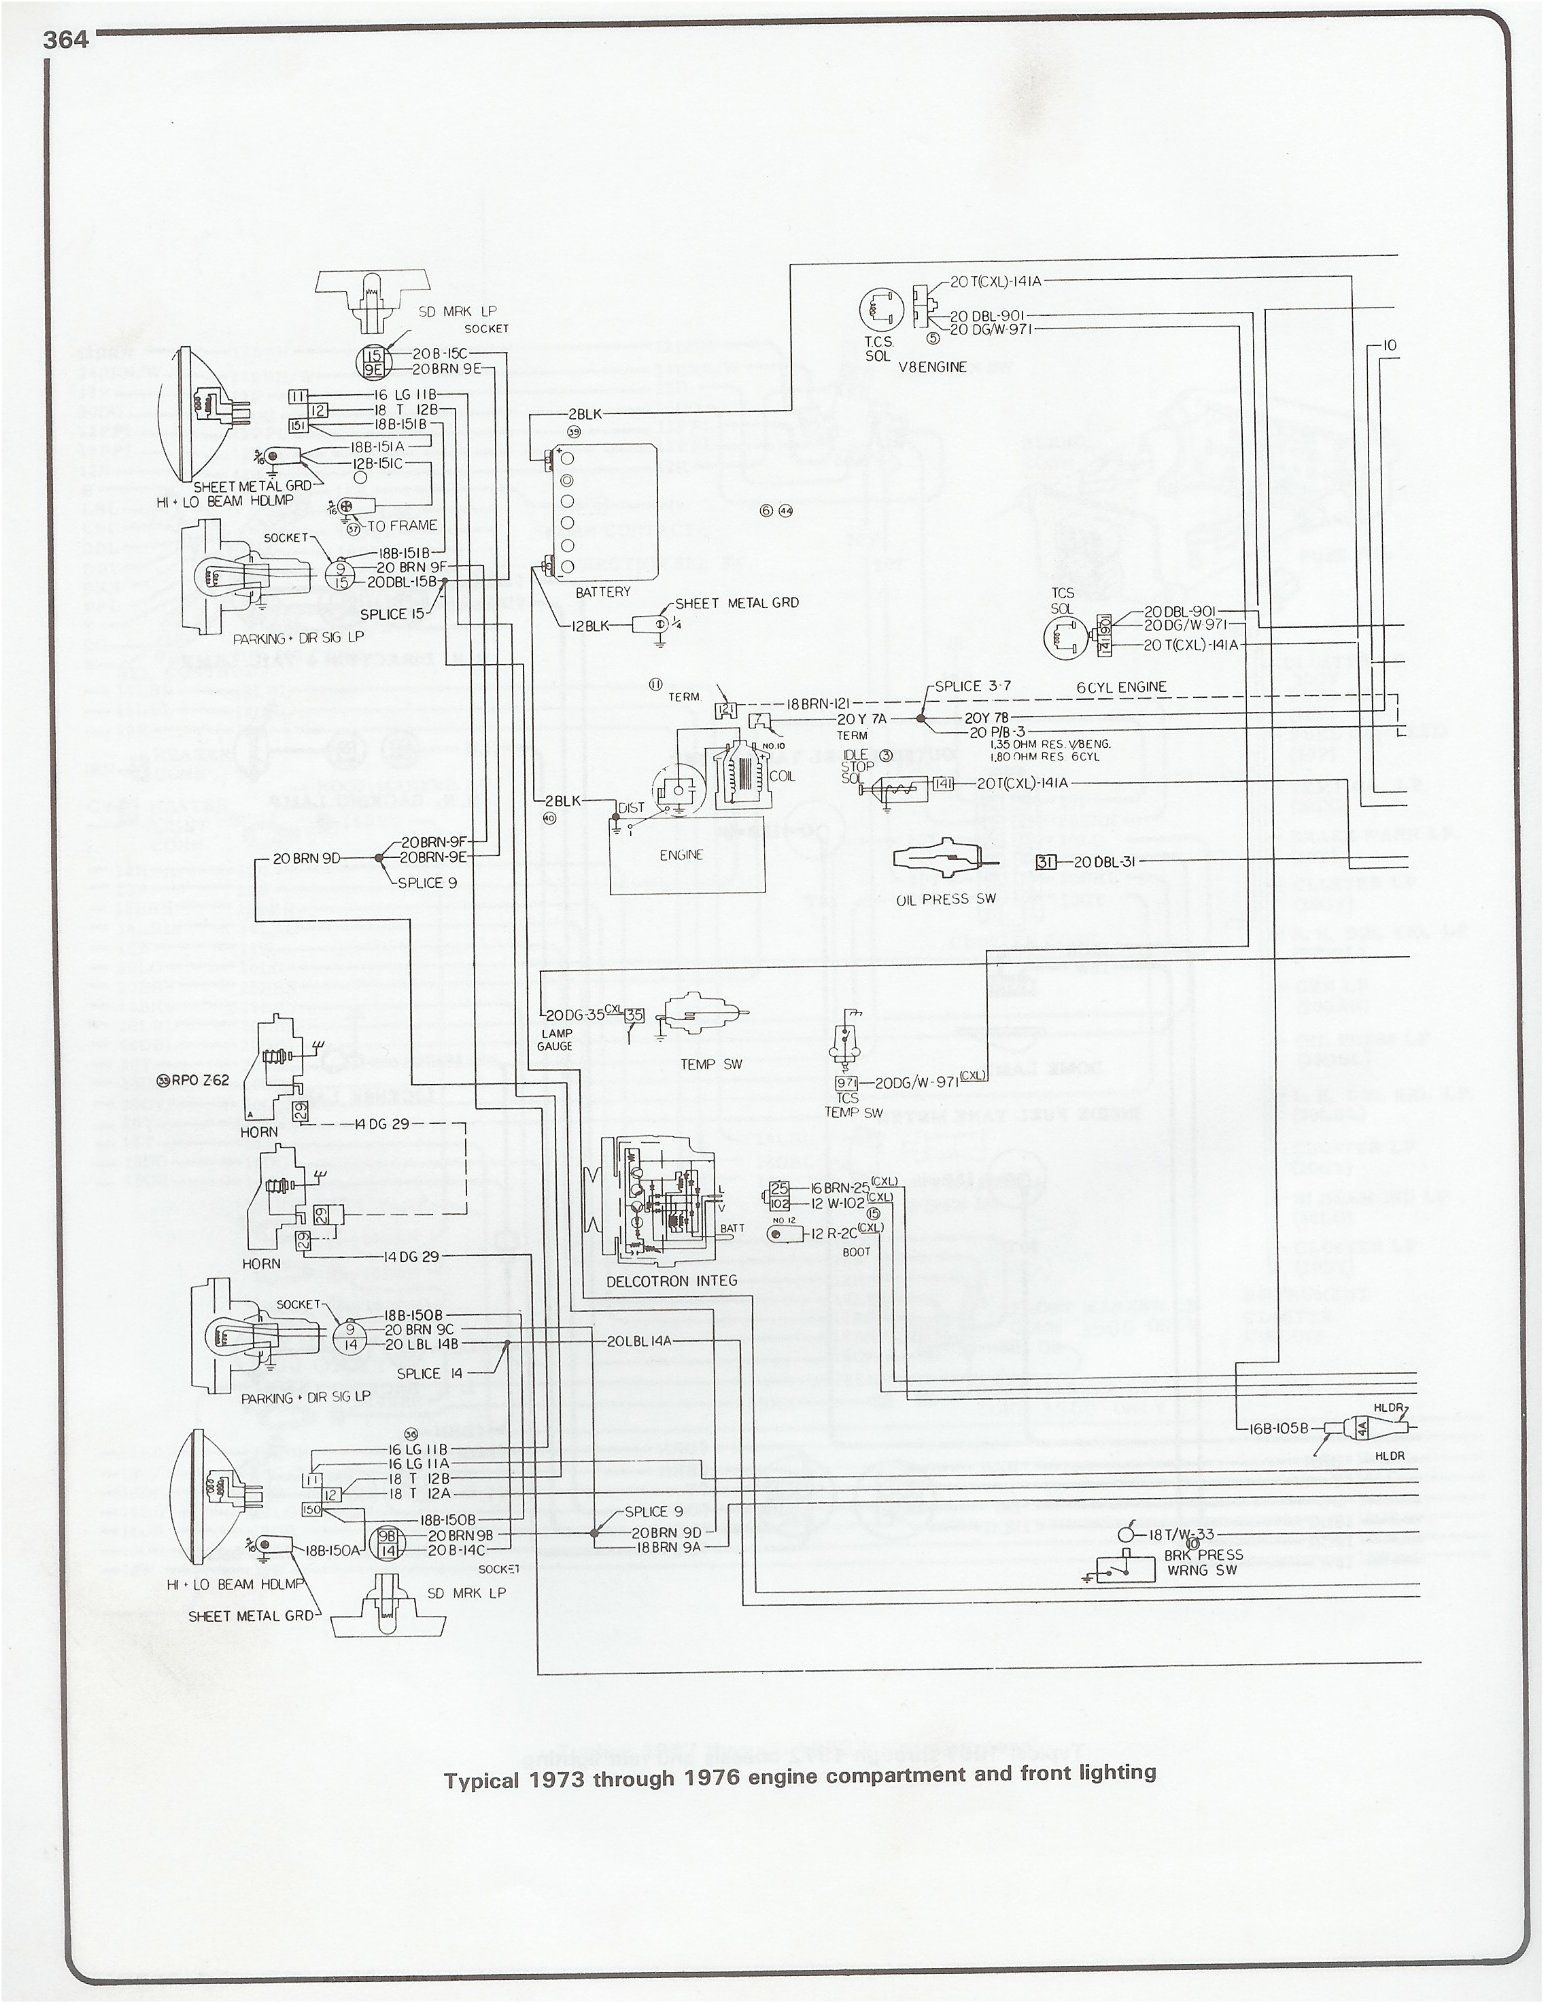 55 chevy sedan wiring diagram wiring diagrams 55 chevy radio wiring getting started